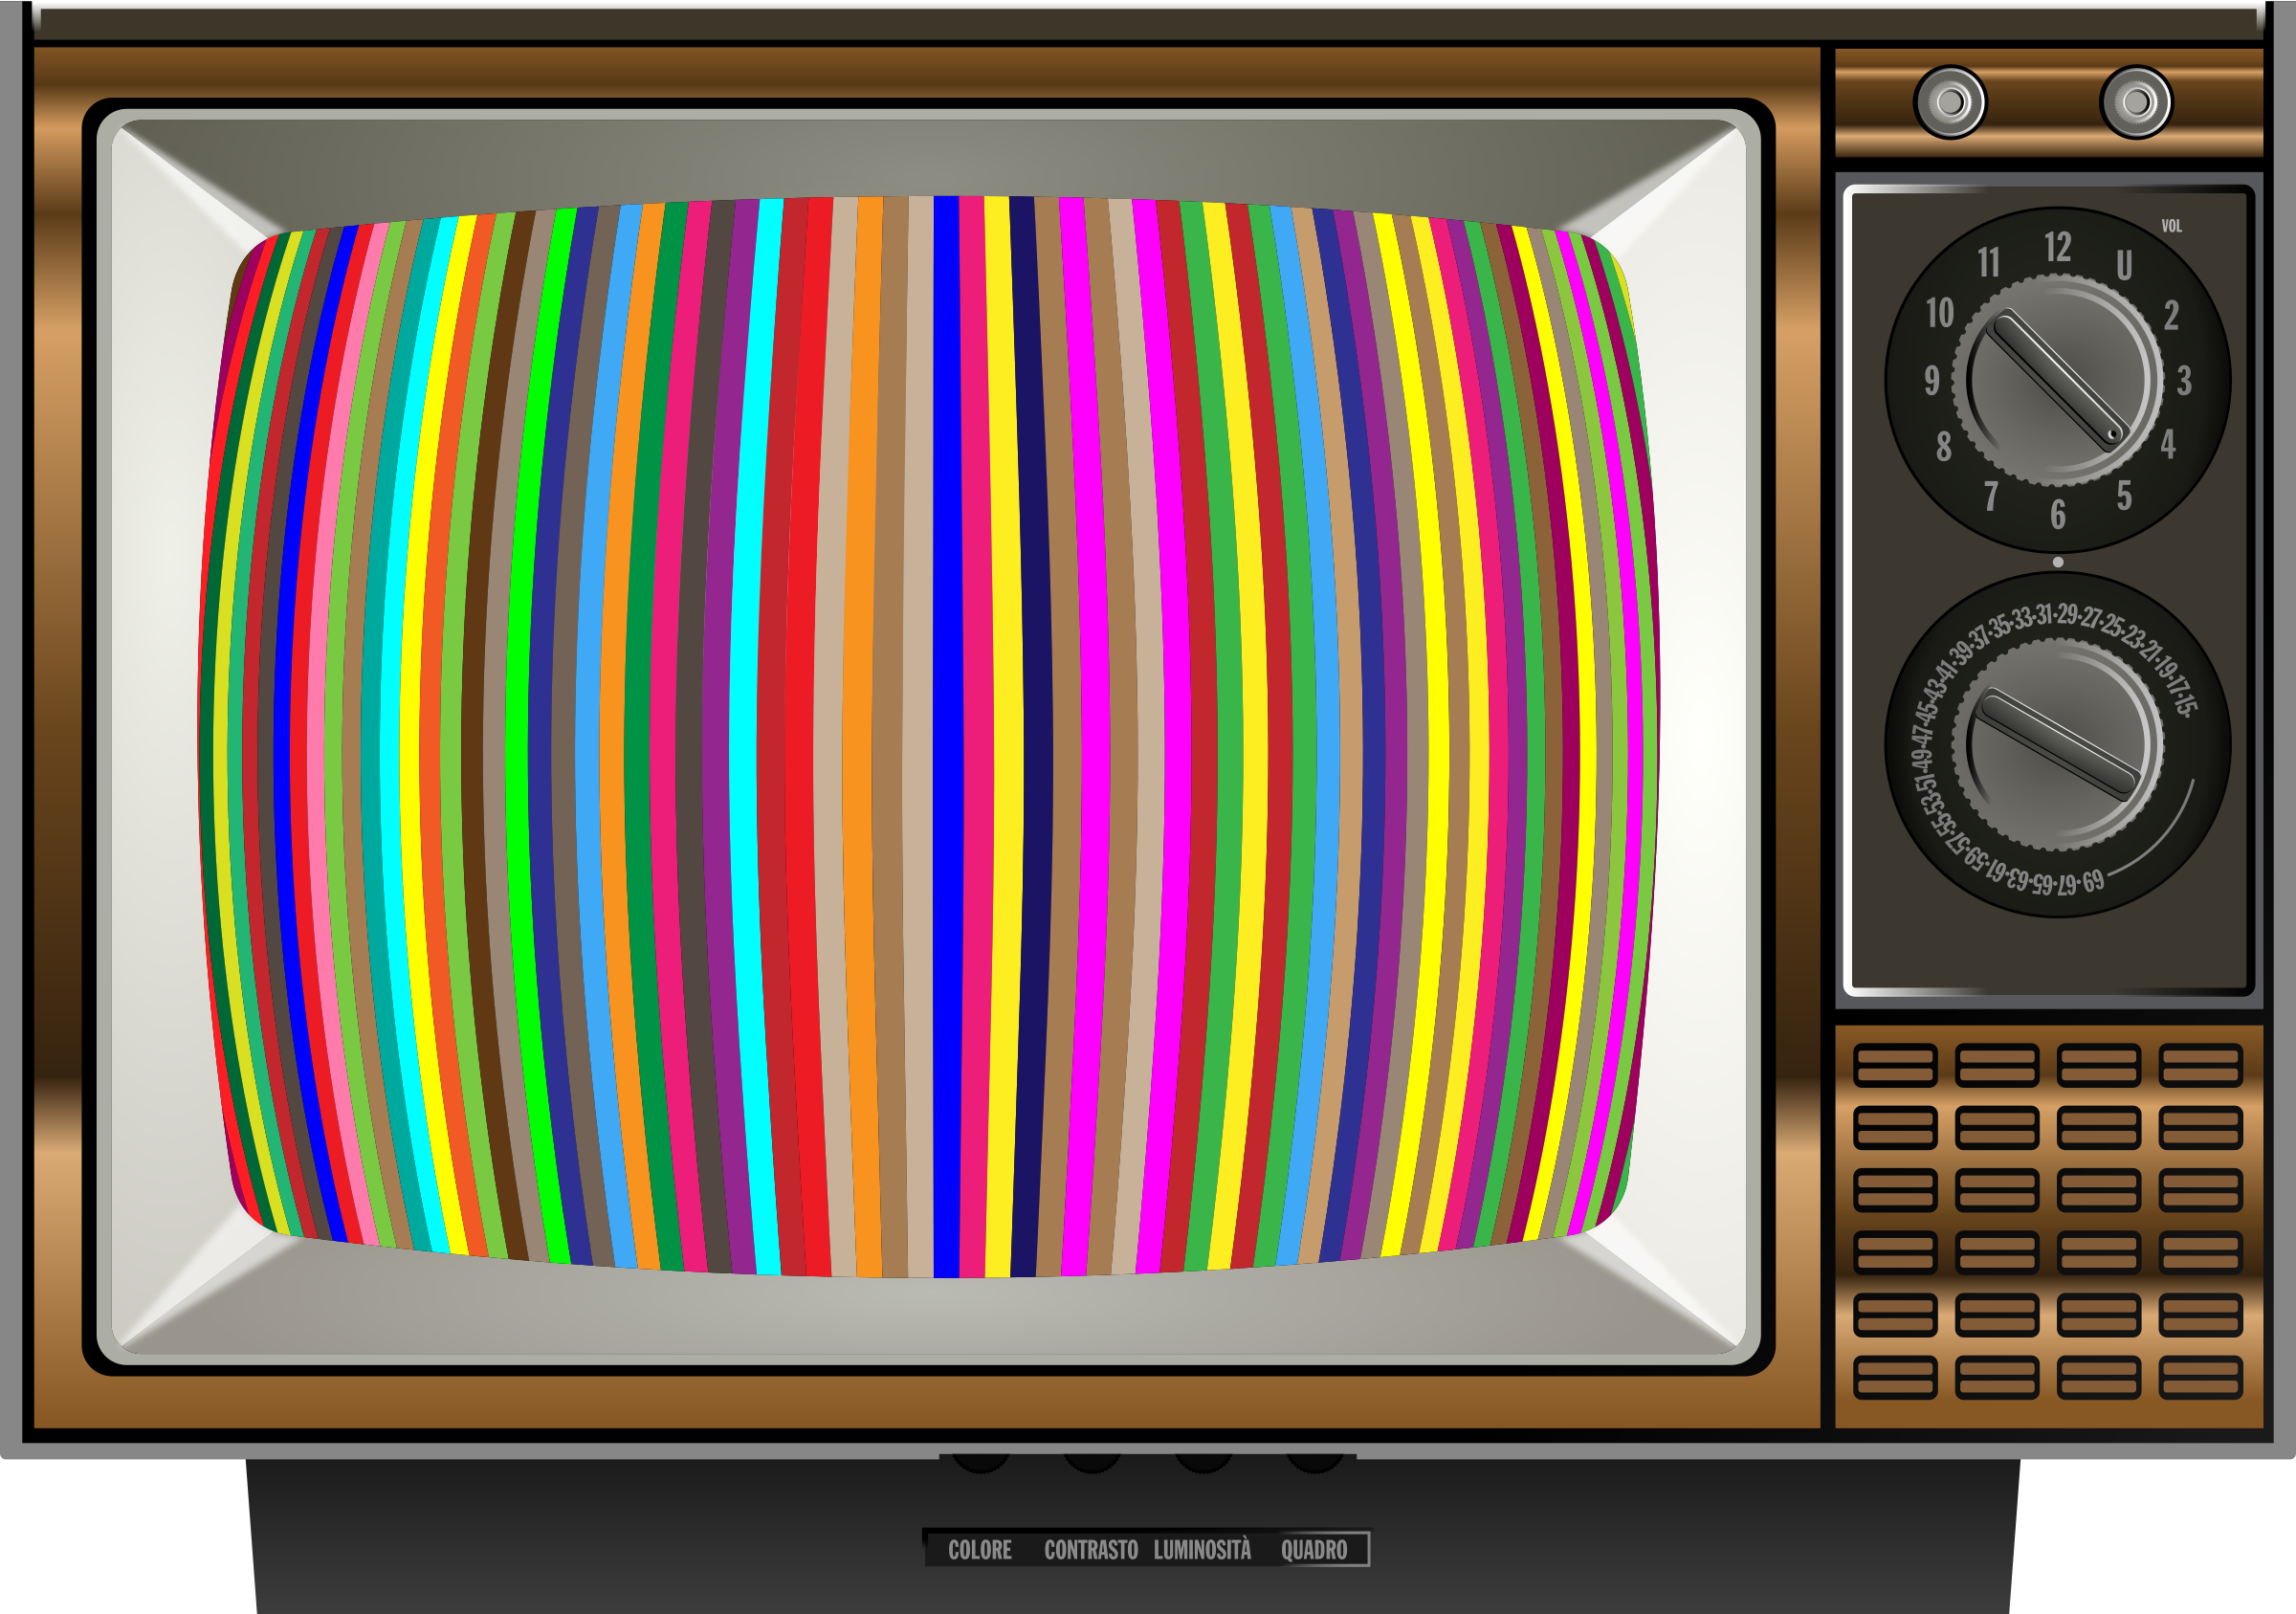 Striped Test Pattern Television by GDJ